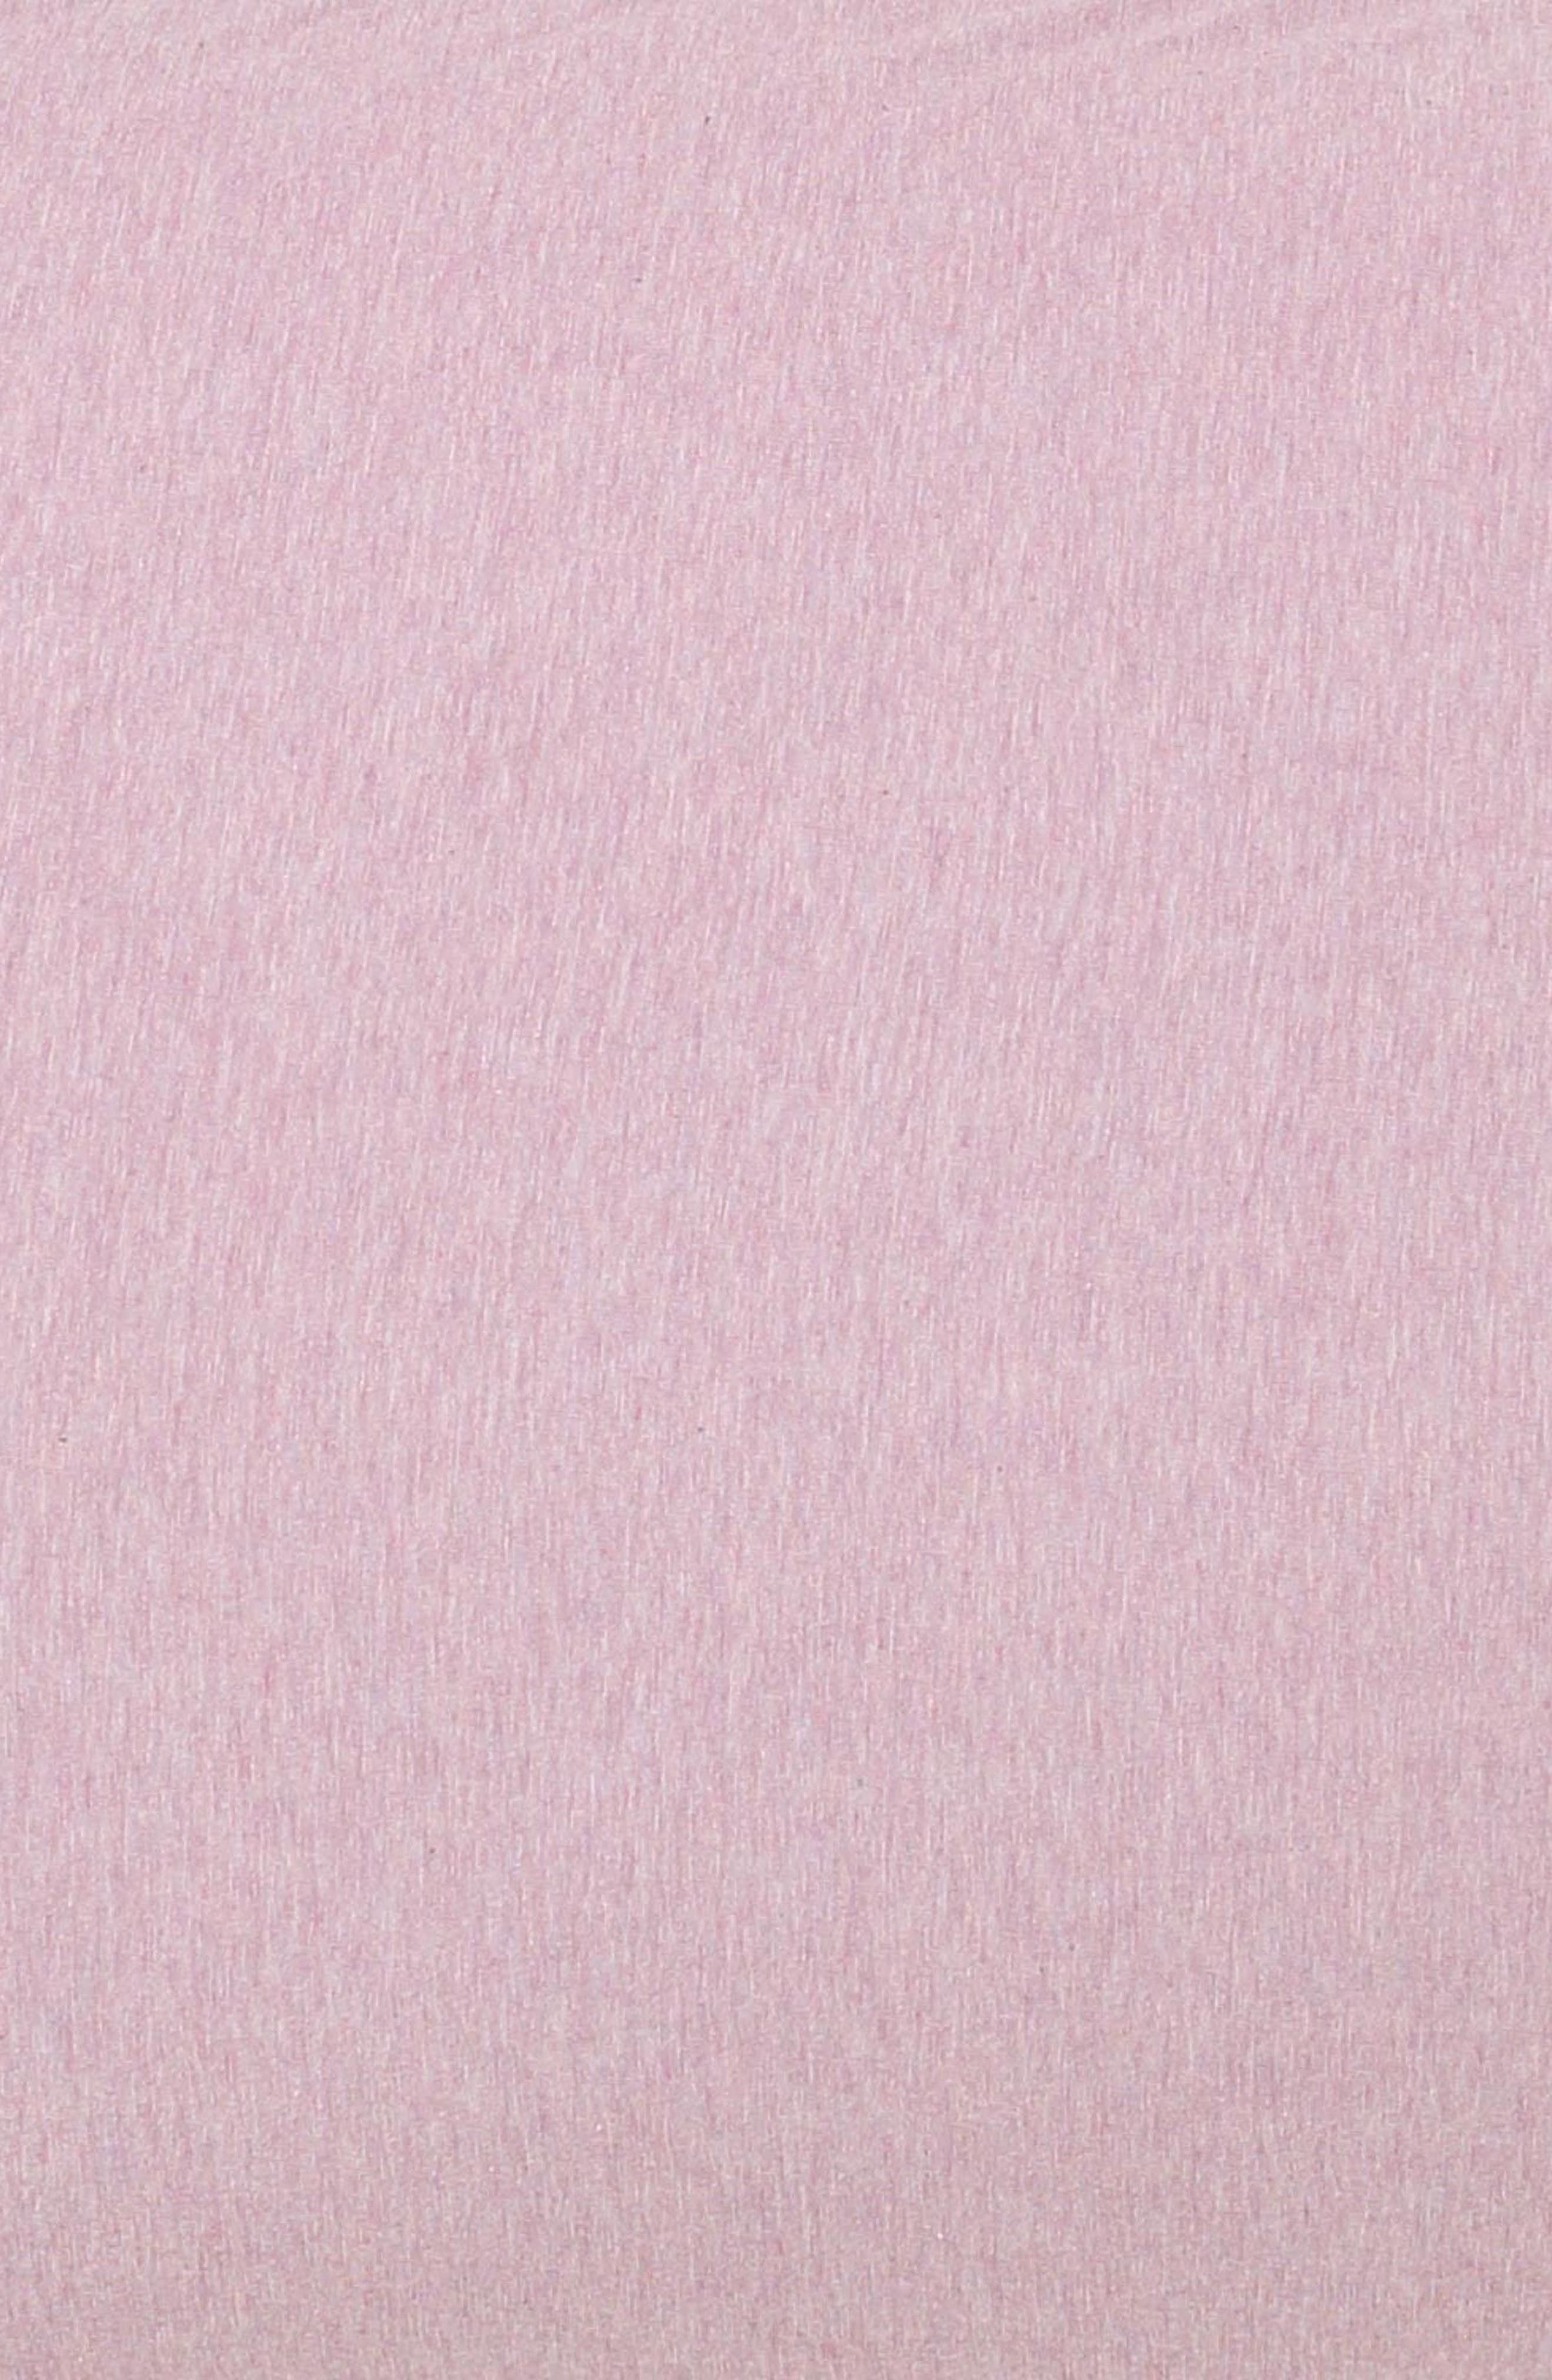 Cotton Jersey Sheet,                         Main,                         color, 500